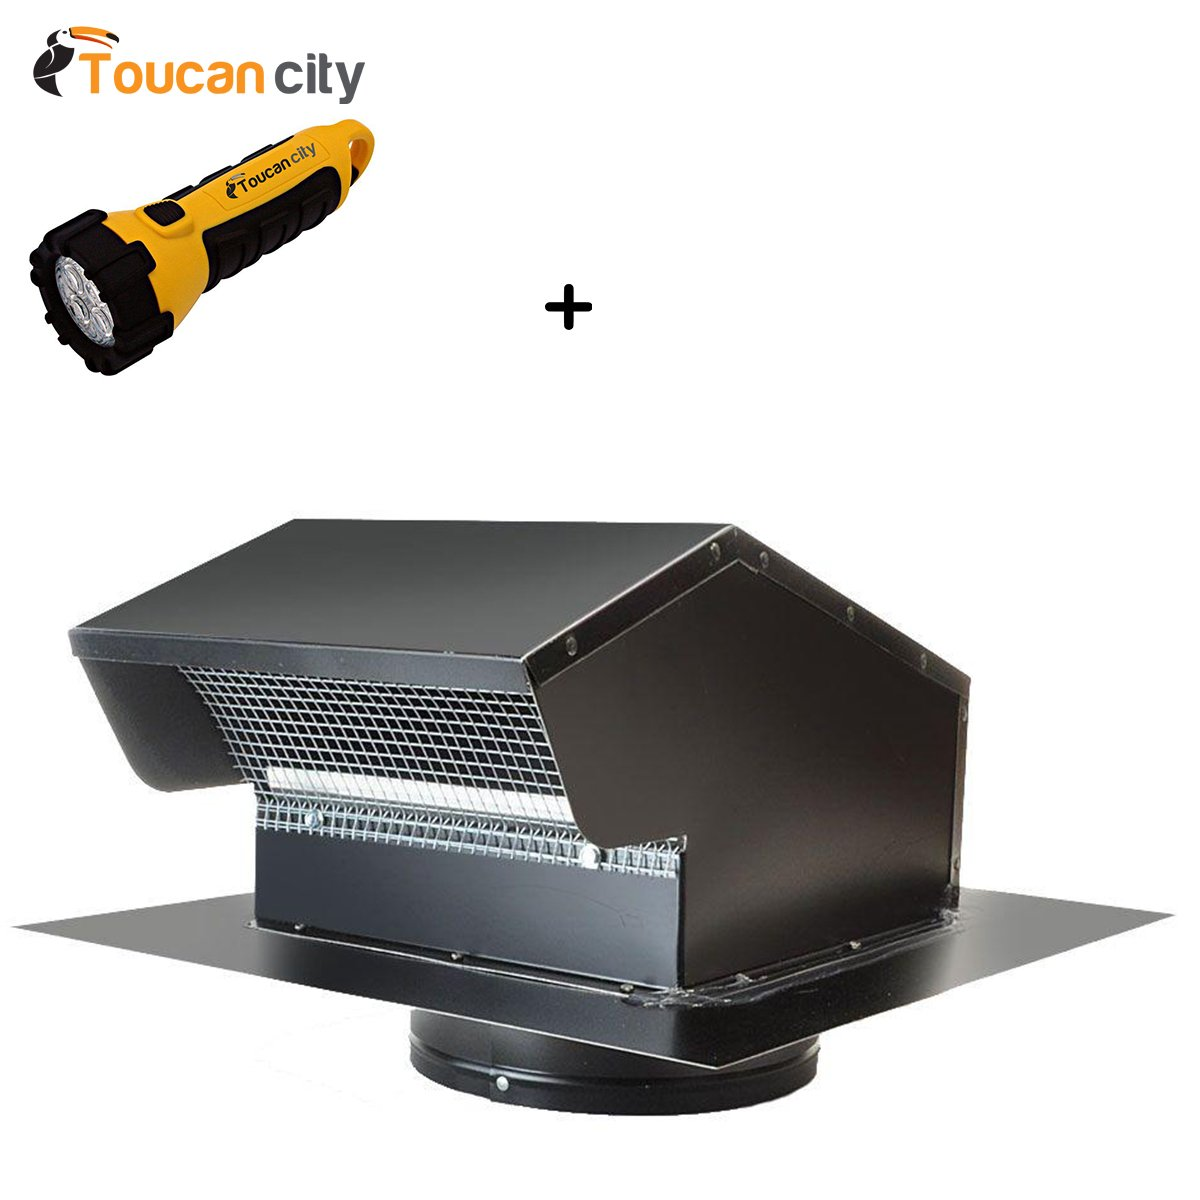 Toucan City LED flashlight and Master Flow 7 in. Goose Neck Vent - Roof Cap in Black GNV7BL